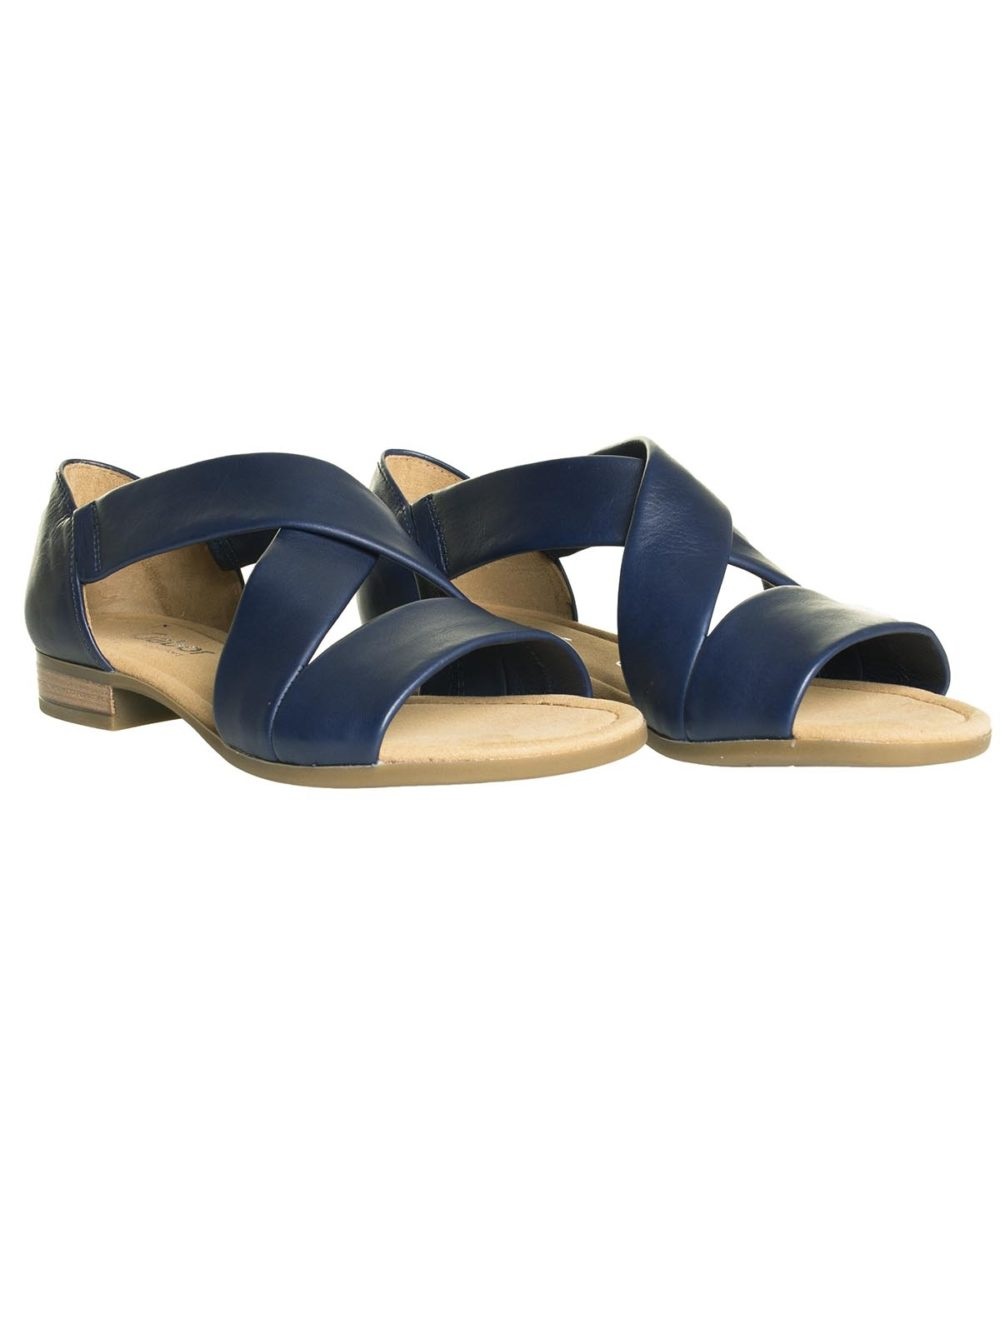 Sweetly Sandal Gabor Katie Kerr Women's Clothing